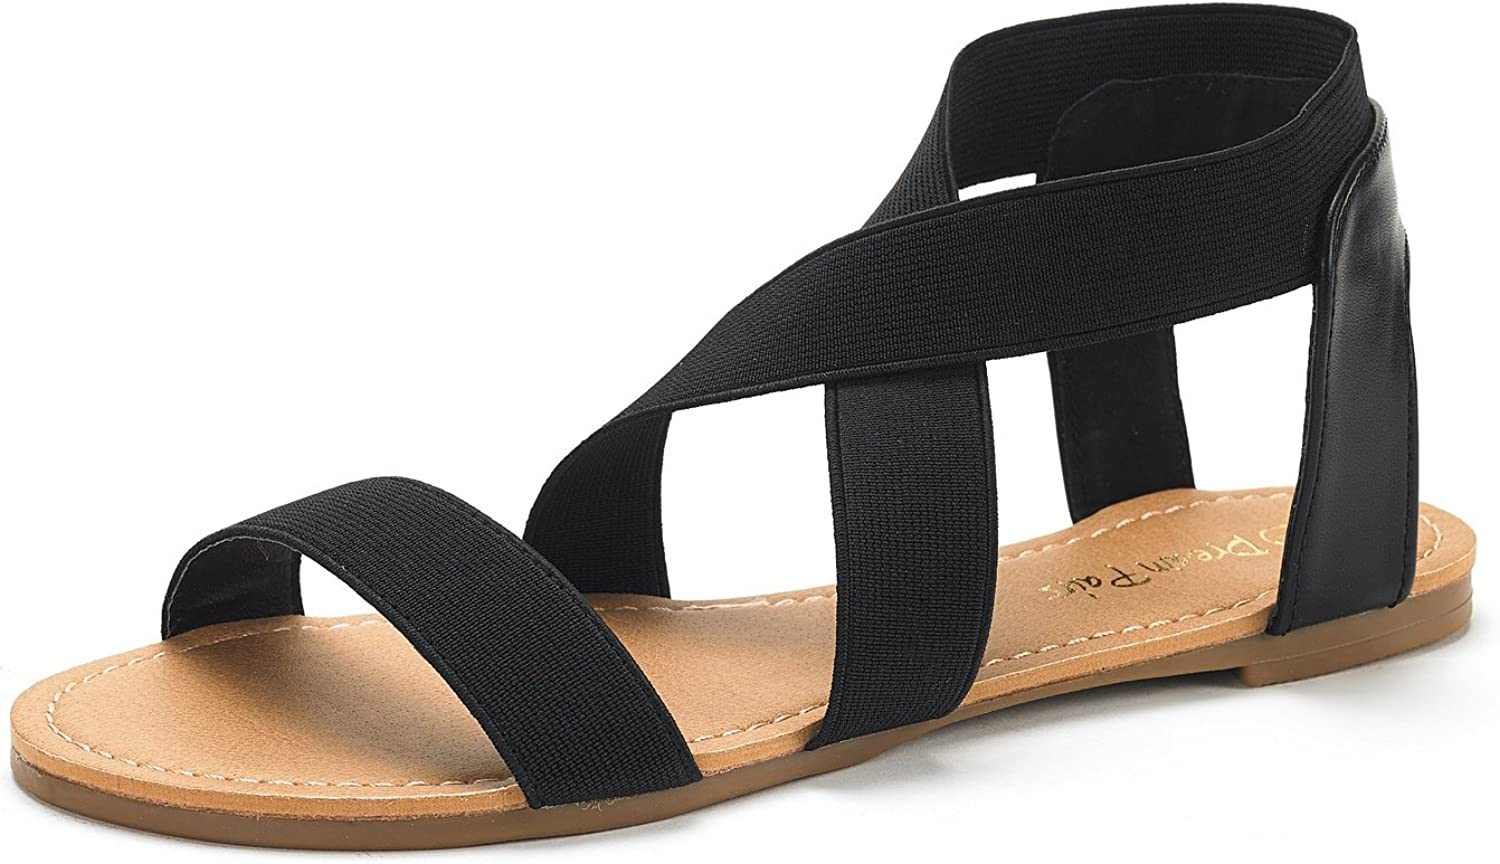 DREAM PAIRS Women's Elatica Elastic Ankle At the price Max 82% OFF of surprise Strap Flat Sandals